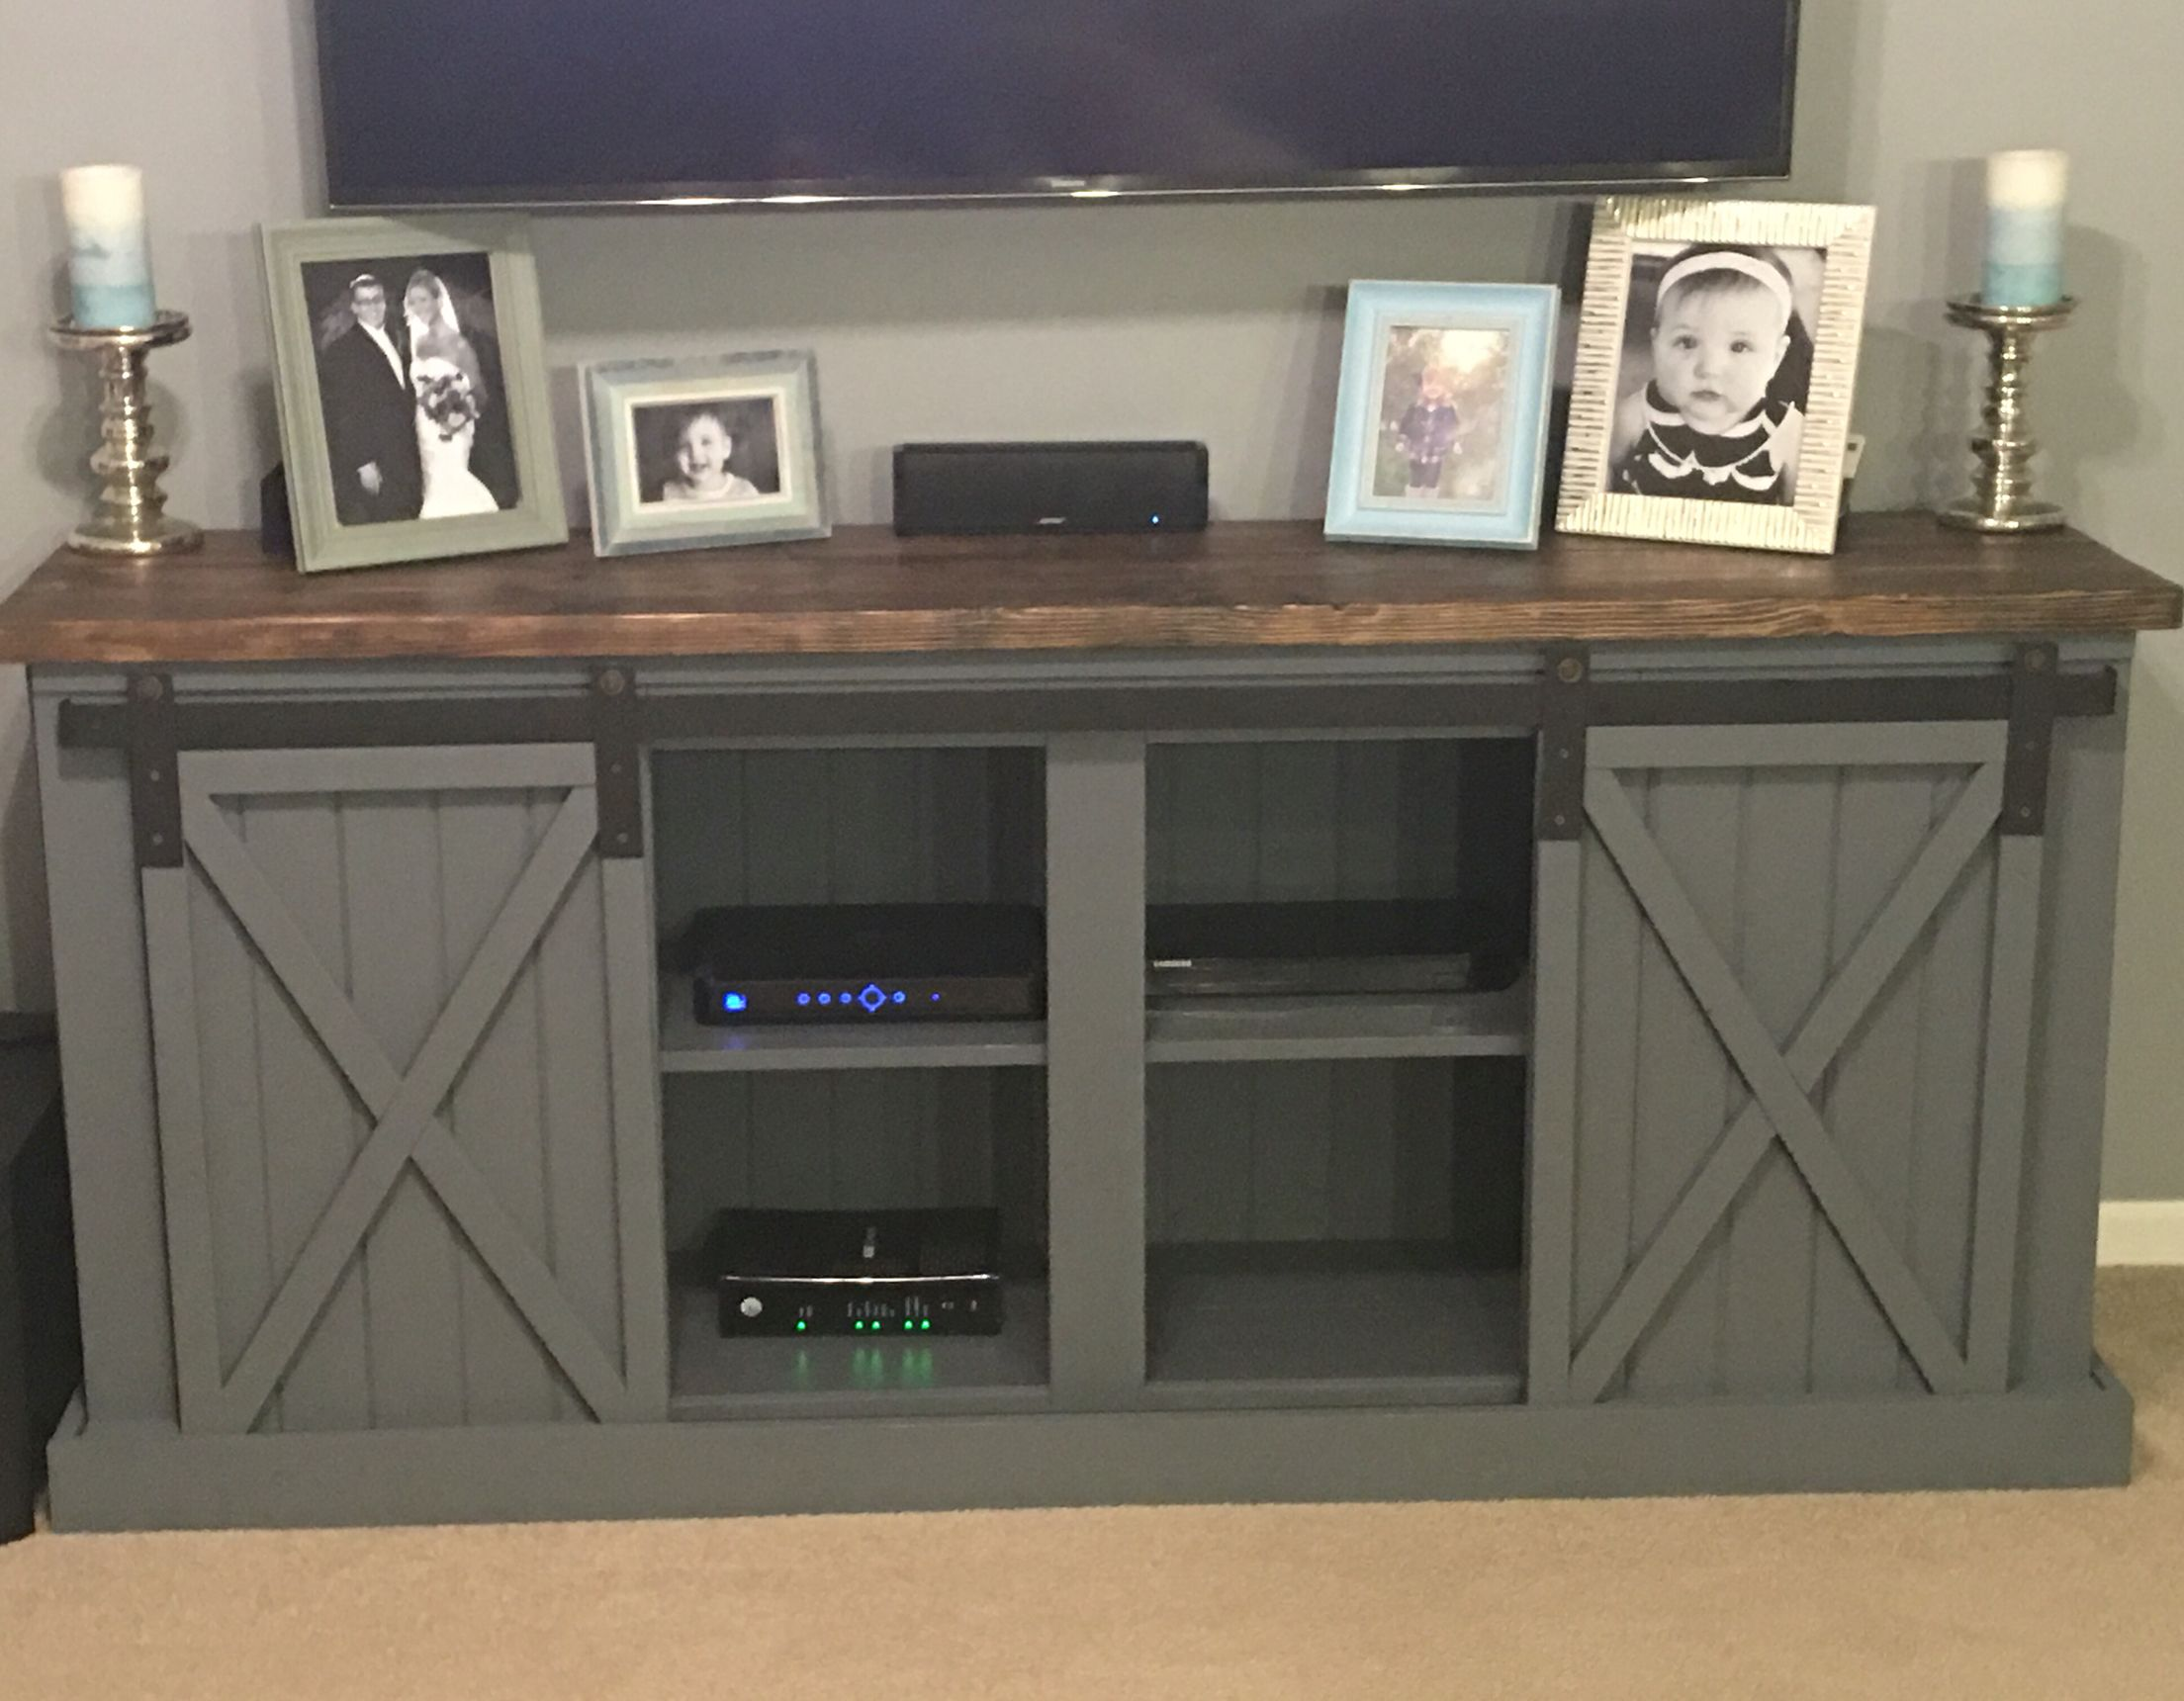 Our custom built entertainment center from NinaV